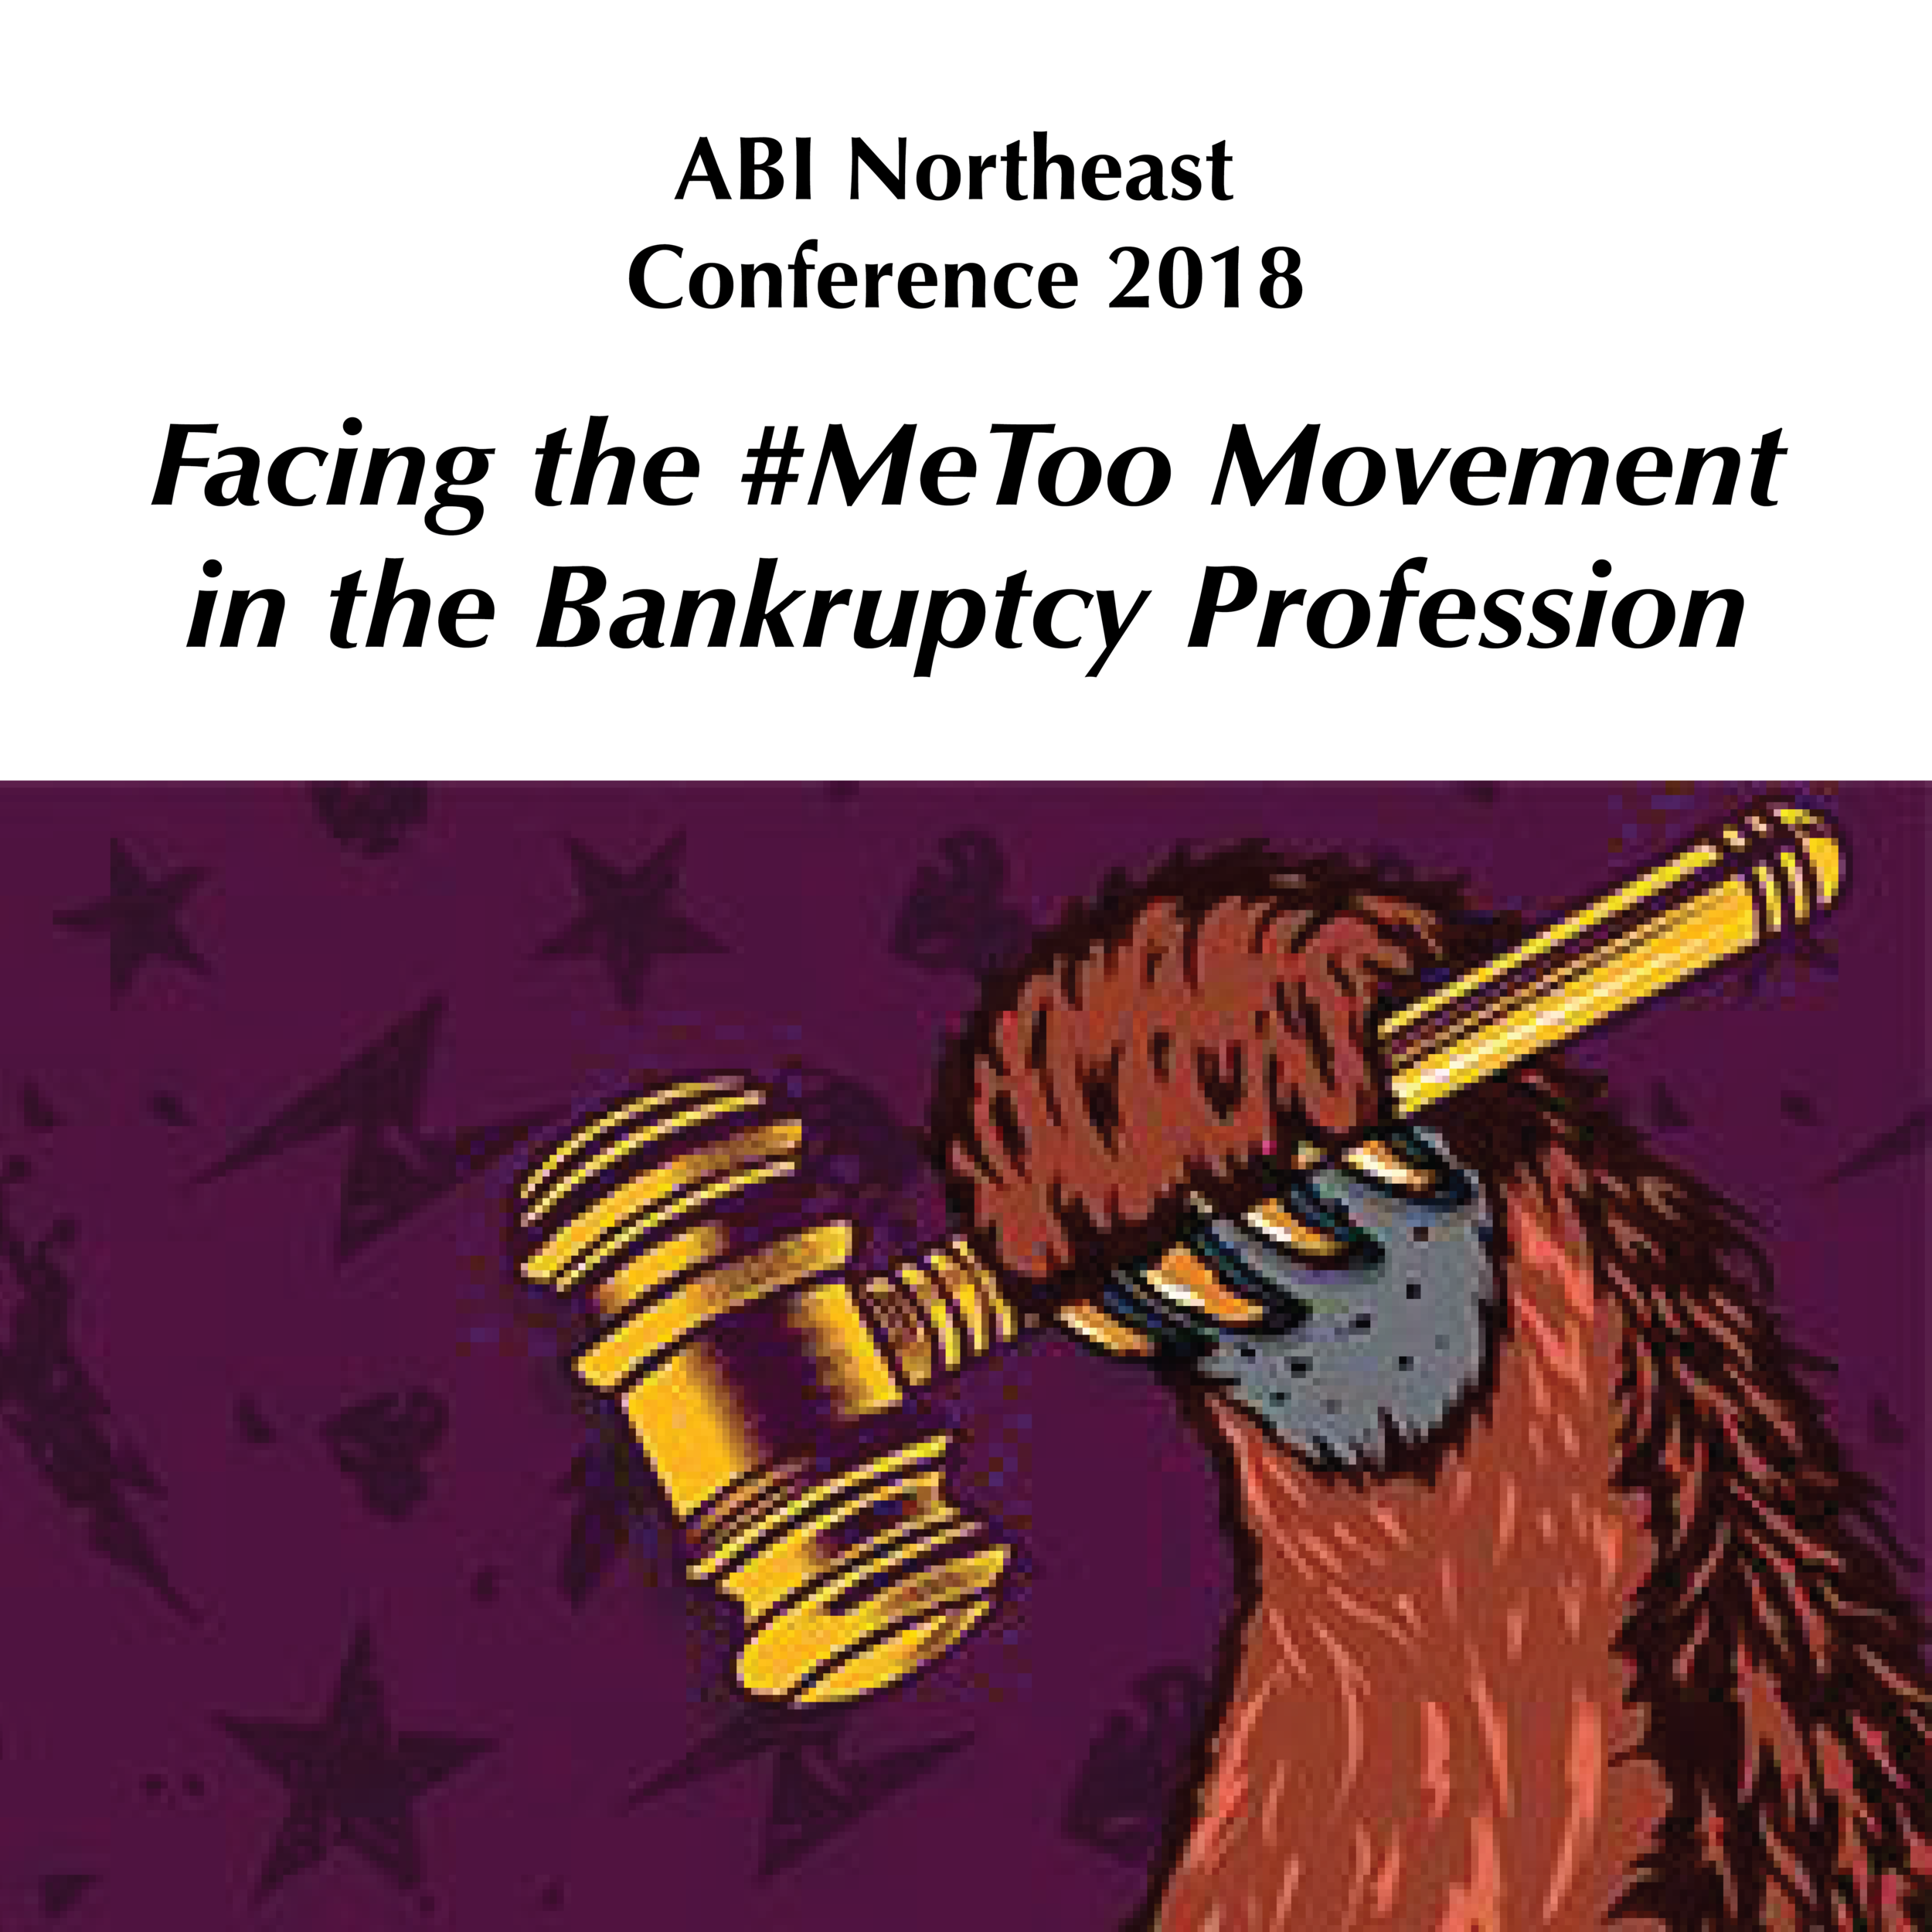 Facing the #MeToo Movement in the Bankruptcy Profession - Purple Campaign President Ally Coll joined Judge Joan Feeney, Proskauer Rose LLP Partner Mark Batten, Holland & Knight Partner Paul Lannon, and Cooley LLP Partner Cathy Hershcopf for a panel about #MeToo in the bankruptcy profession at American Bankruptcy Institute's Northeast Summer Conference.